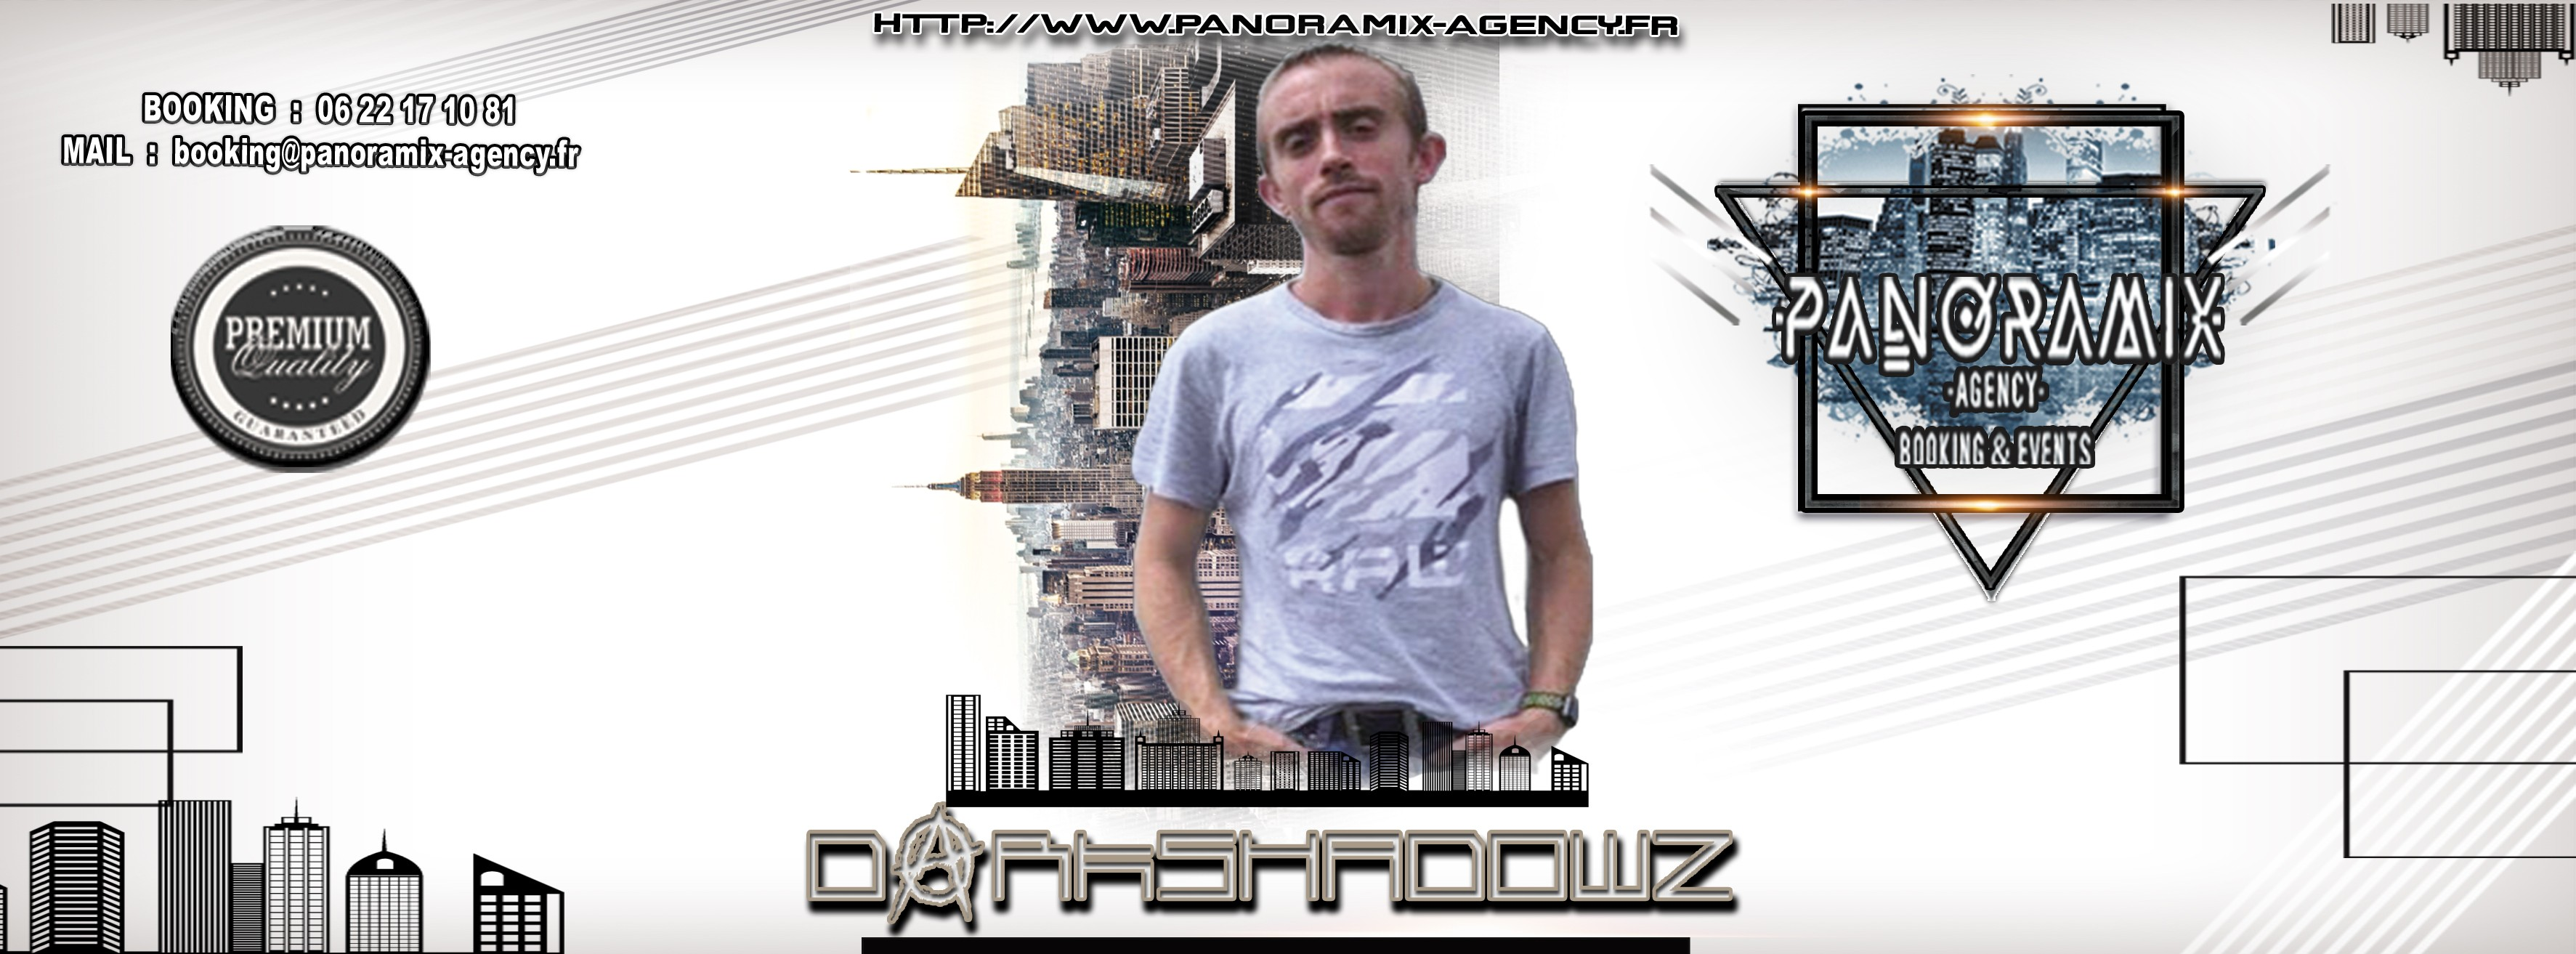 http://panoramix-radio-station.com/wp-content/uploads/2017/07/DARKSHADOWS-panoramix-agency-bannere-.jpg